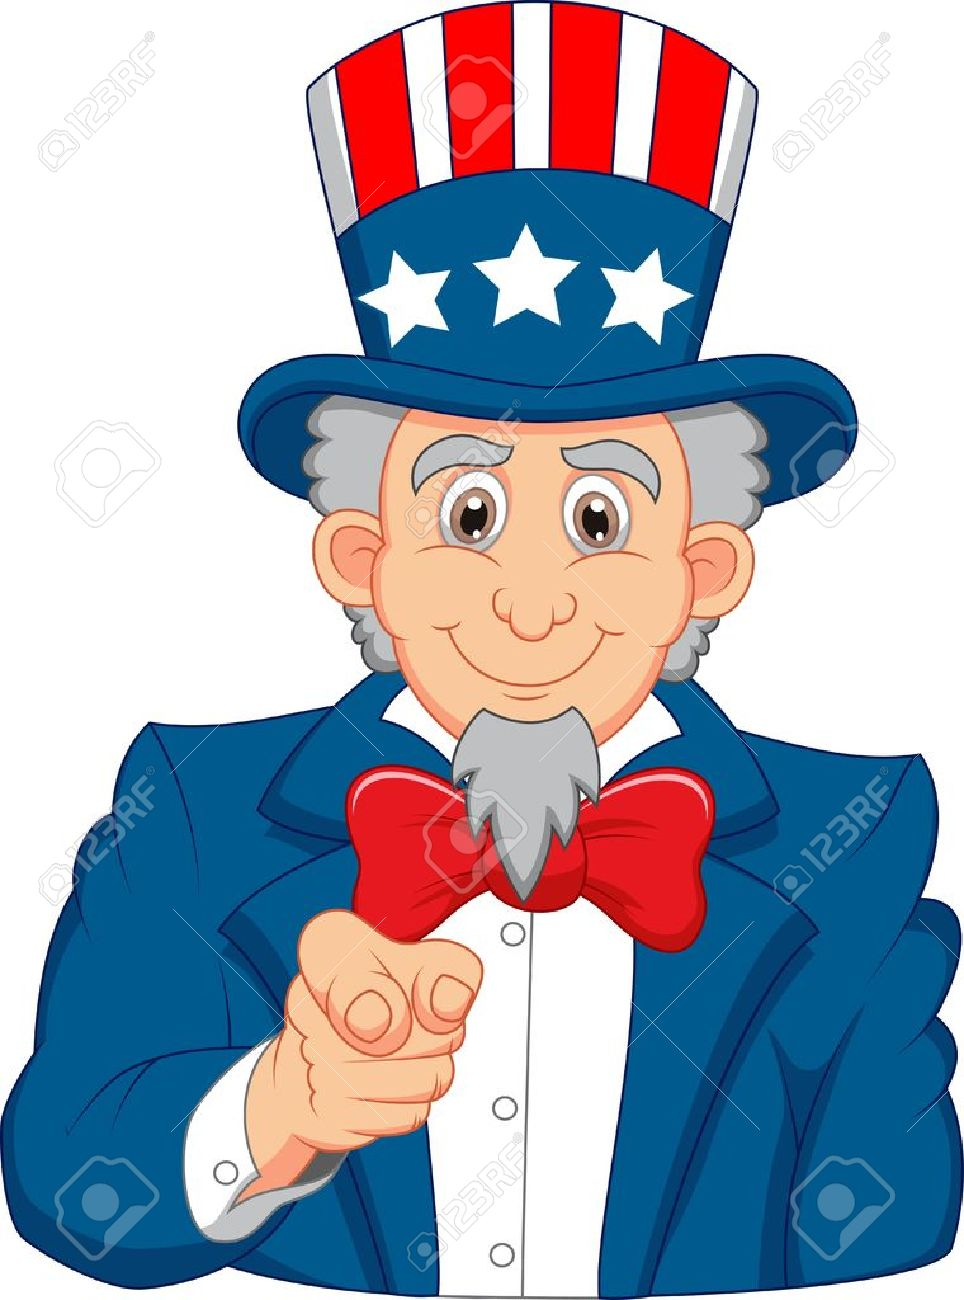 uncle sam cartoon wants you royalty free cliparts vectors and rh 123rf com